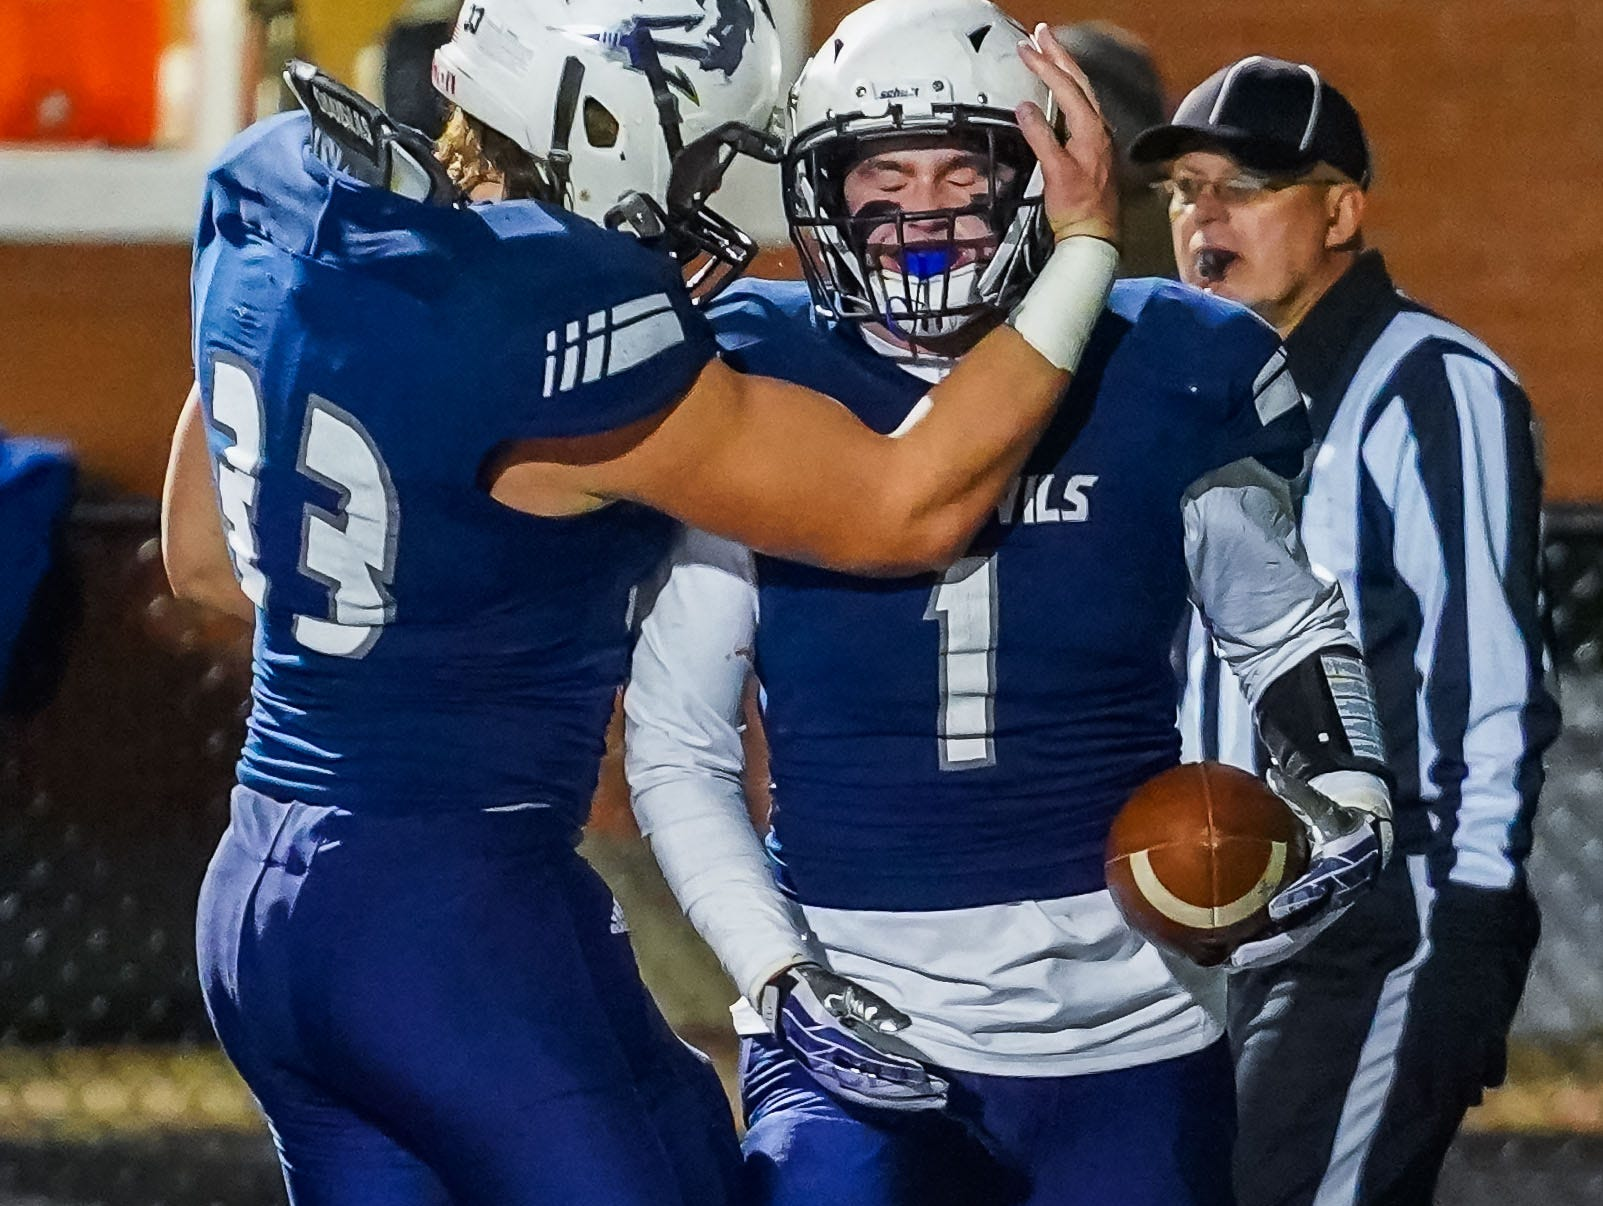 Tunica's Jake Wade (1) is congratulated by Elijah Magee (33) following a touchdown against Union Christian during the MAIS Class A Championship Football game held at Jackson Academy in Jackson, MS, Thursday November 15, 2018.(Bob Smith-For The Clarion Ledger)